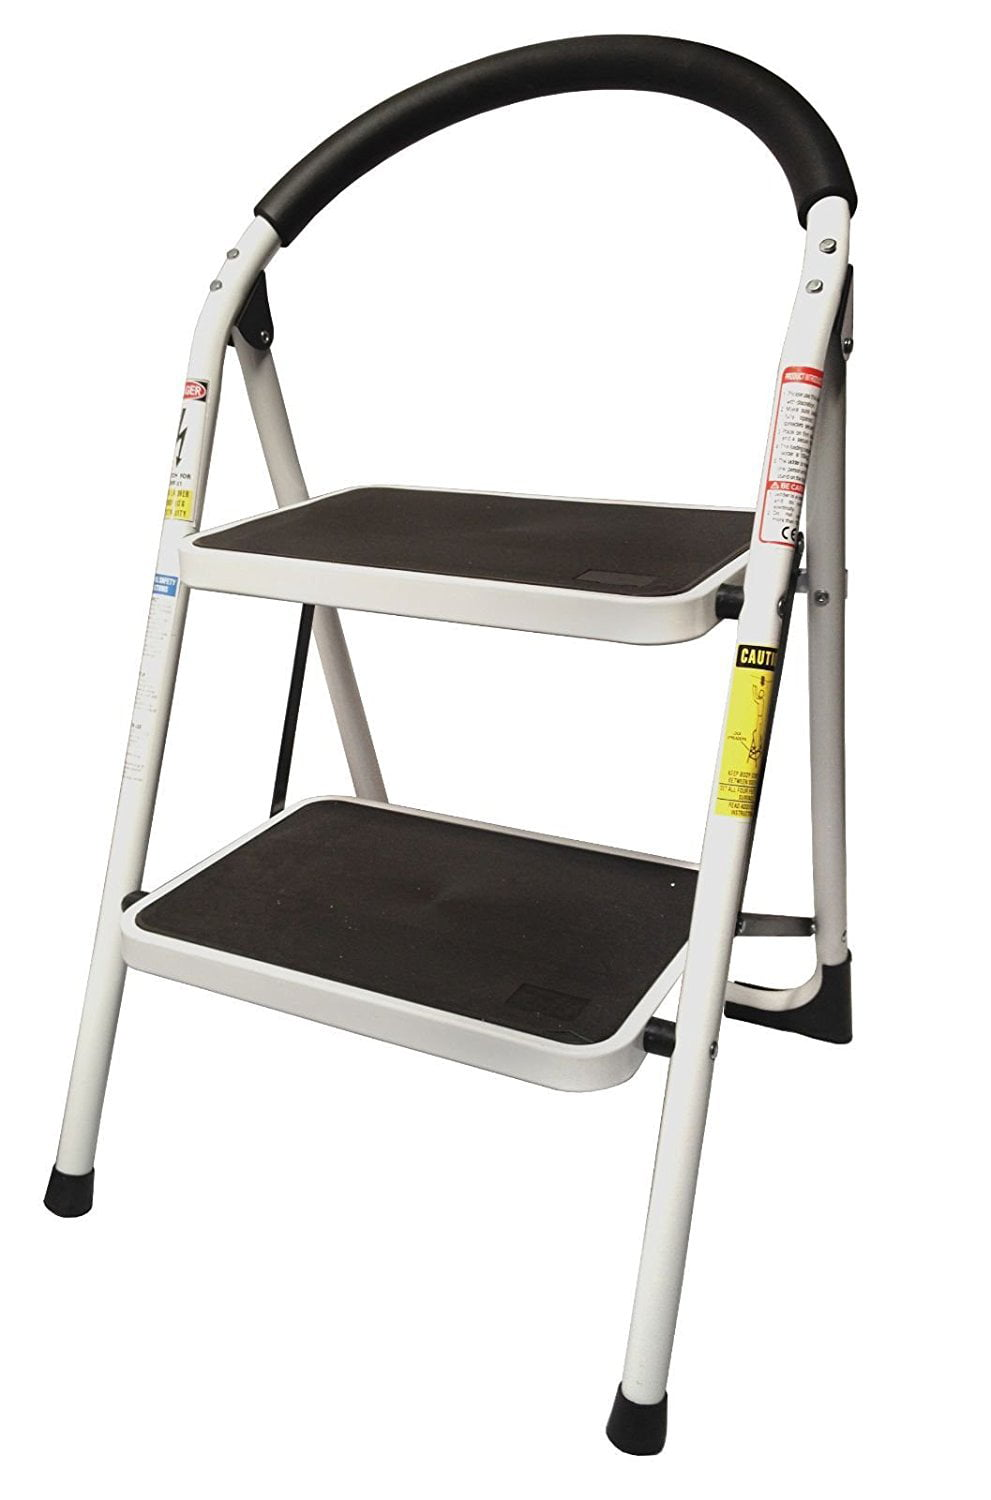 Wondrous Stepup Heavy Duty Steel Reinforced Folding 2 Step Ladder Stool 330 Lbs Capacity Walmart Com Caraccident5 Cool Chair Designs And Ideas Caraccident5Info